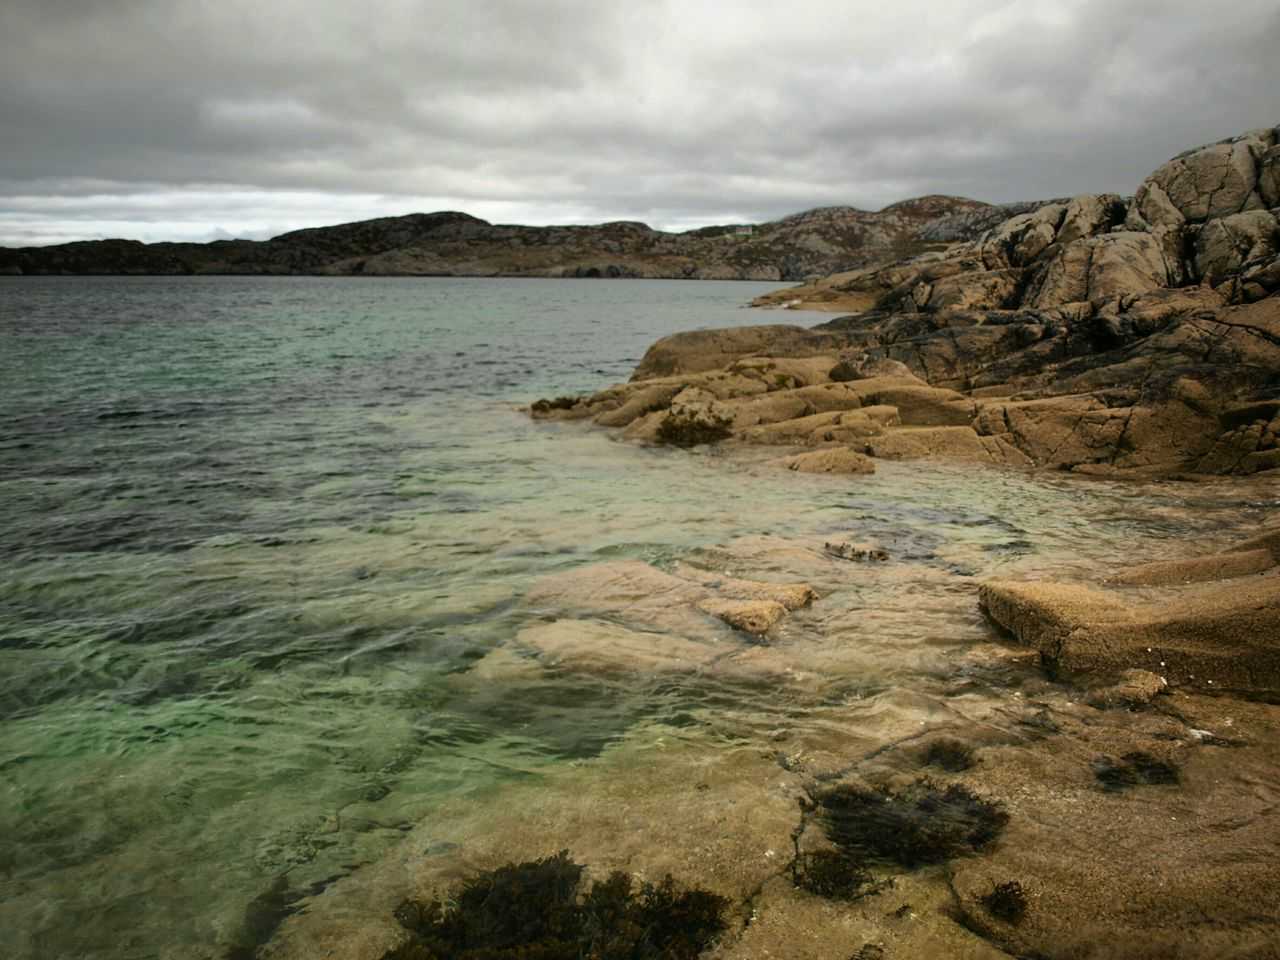 Achmelvich Scotland Beach Sea Rocks Landscape Outdoors Beauty In Nature Water Scenics No People Rock - Object Nature Day Sky Cloud - Sky Blue Water Sand Clear Water Tranquility Rocky Coastline Coast